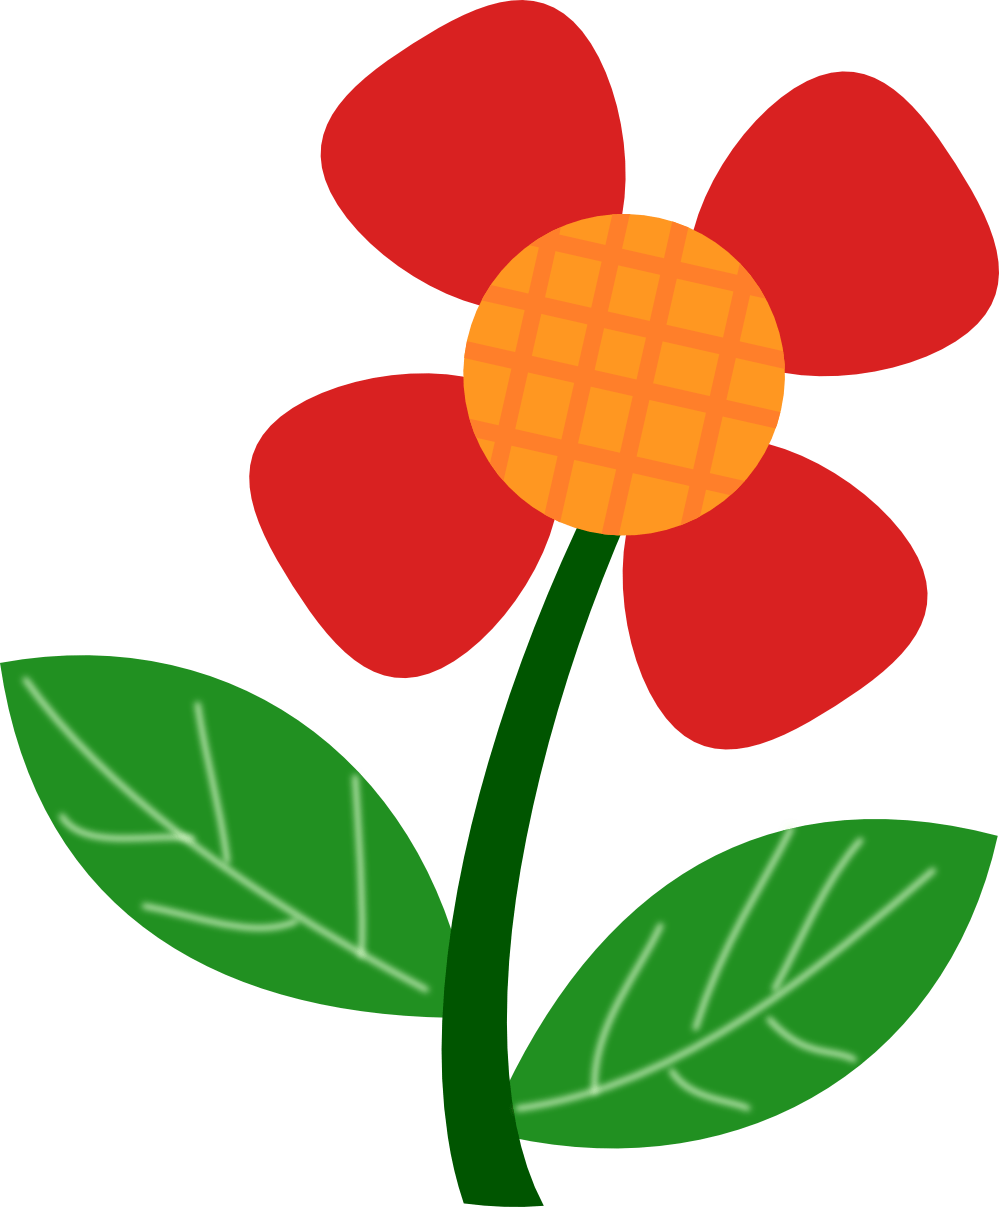 Fall Wallpaper For Iphone 4 Flower Clip Art 2019 Z31 Coloring Page